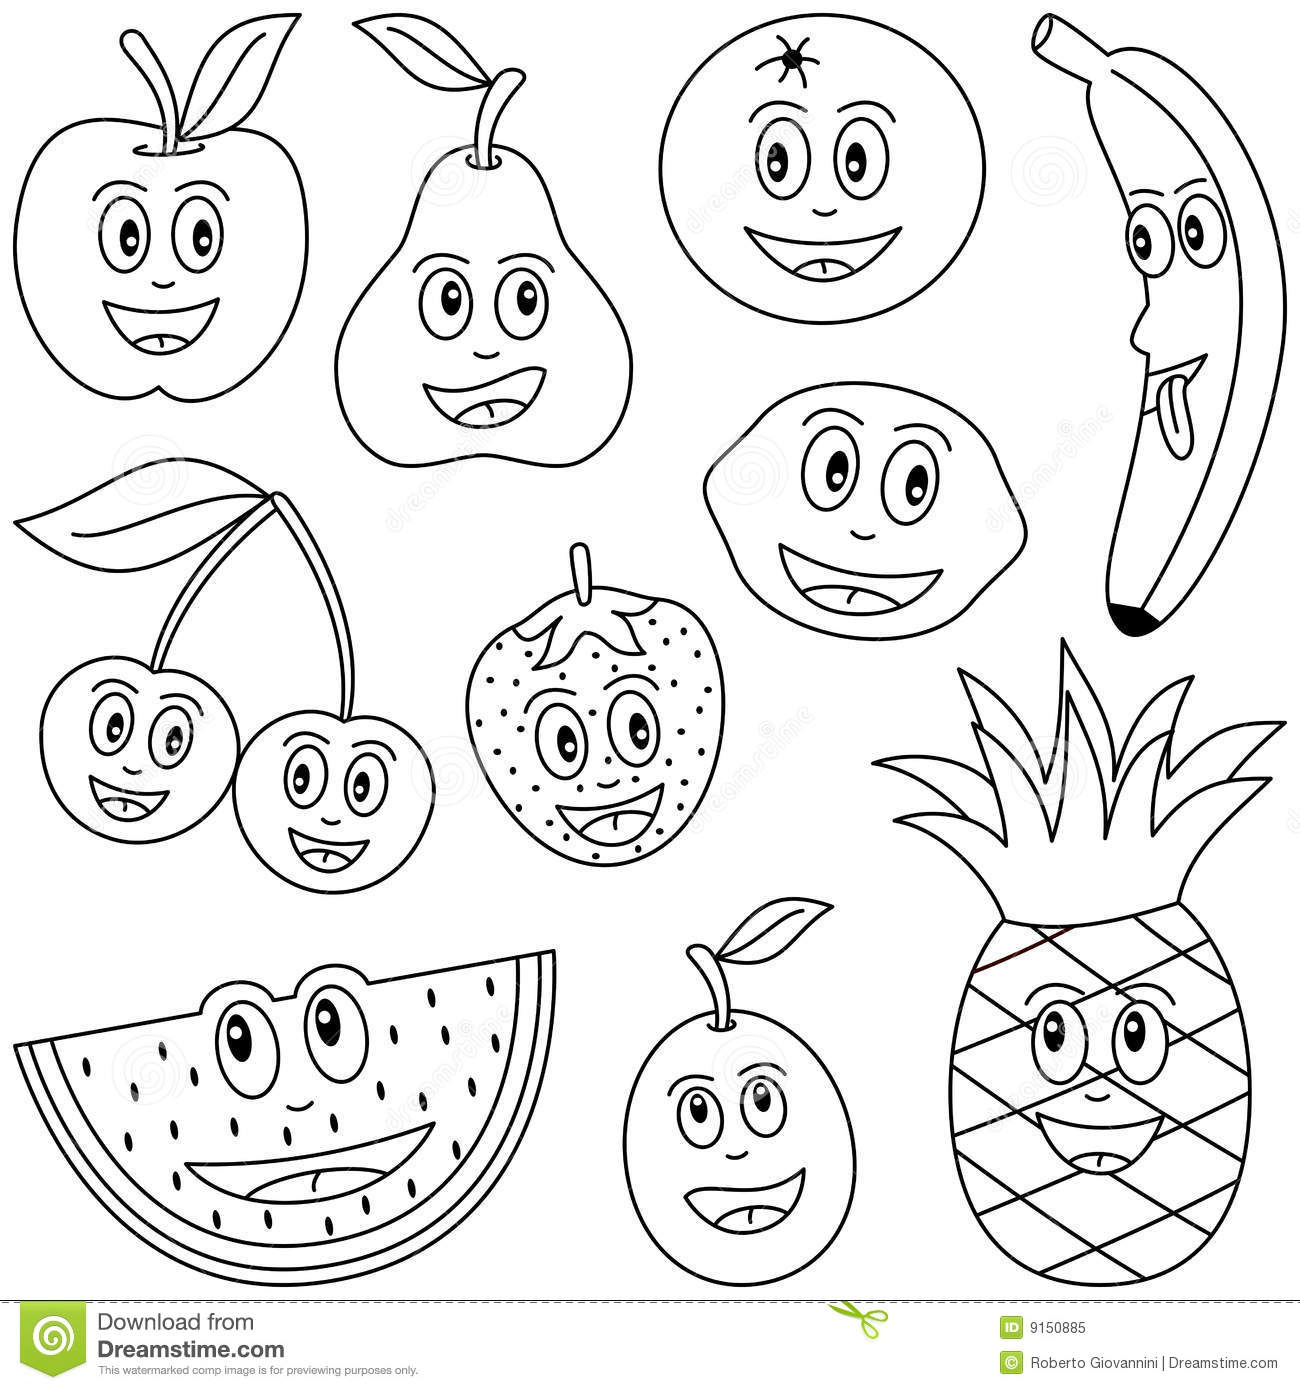 kawaii fruit coloring pages | Frutta Di Coloritura Per I Bambini Illustrazione ...